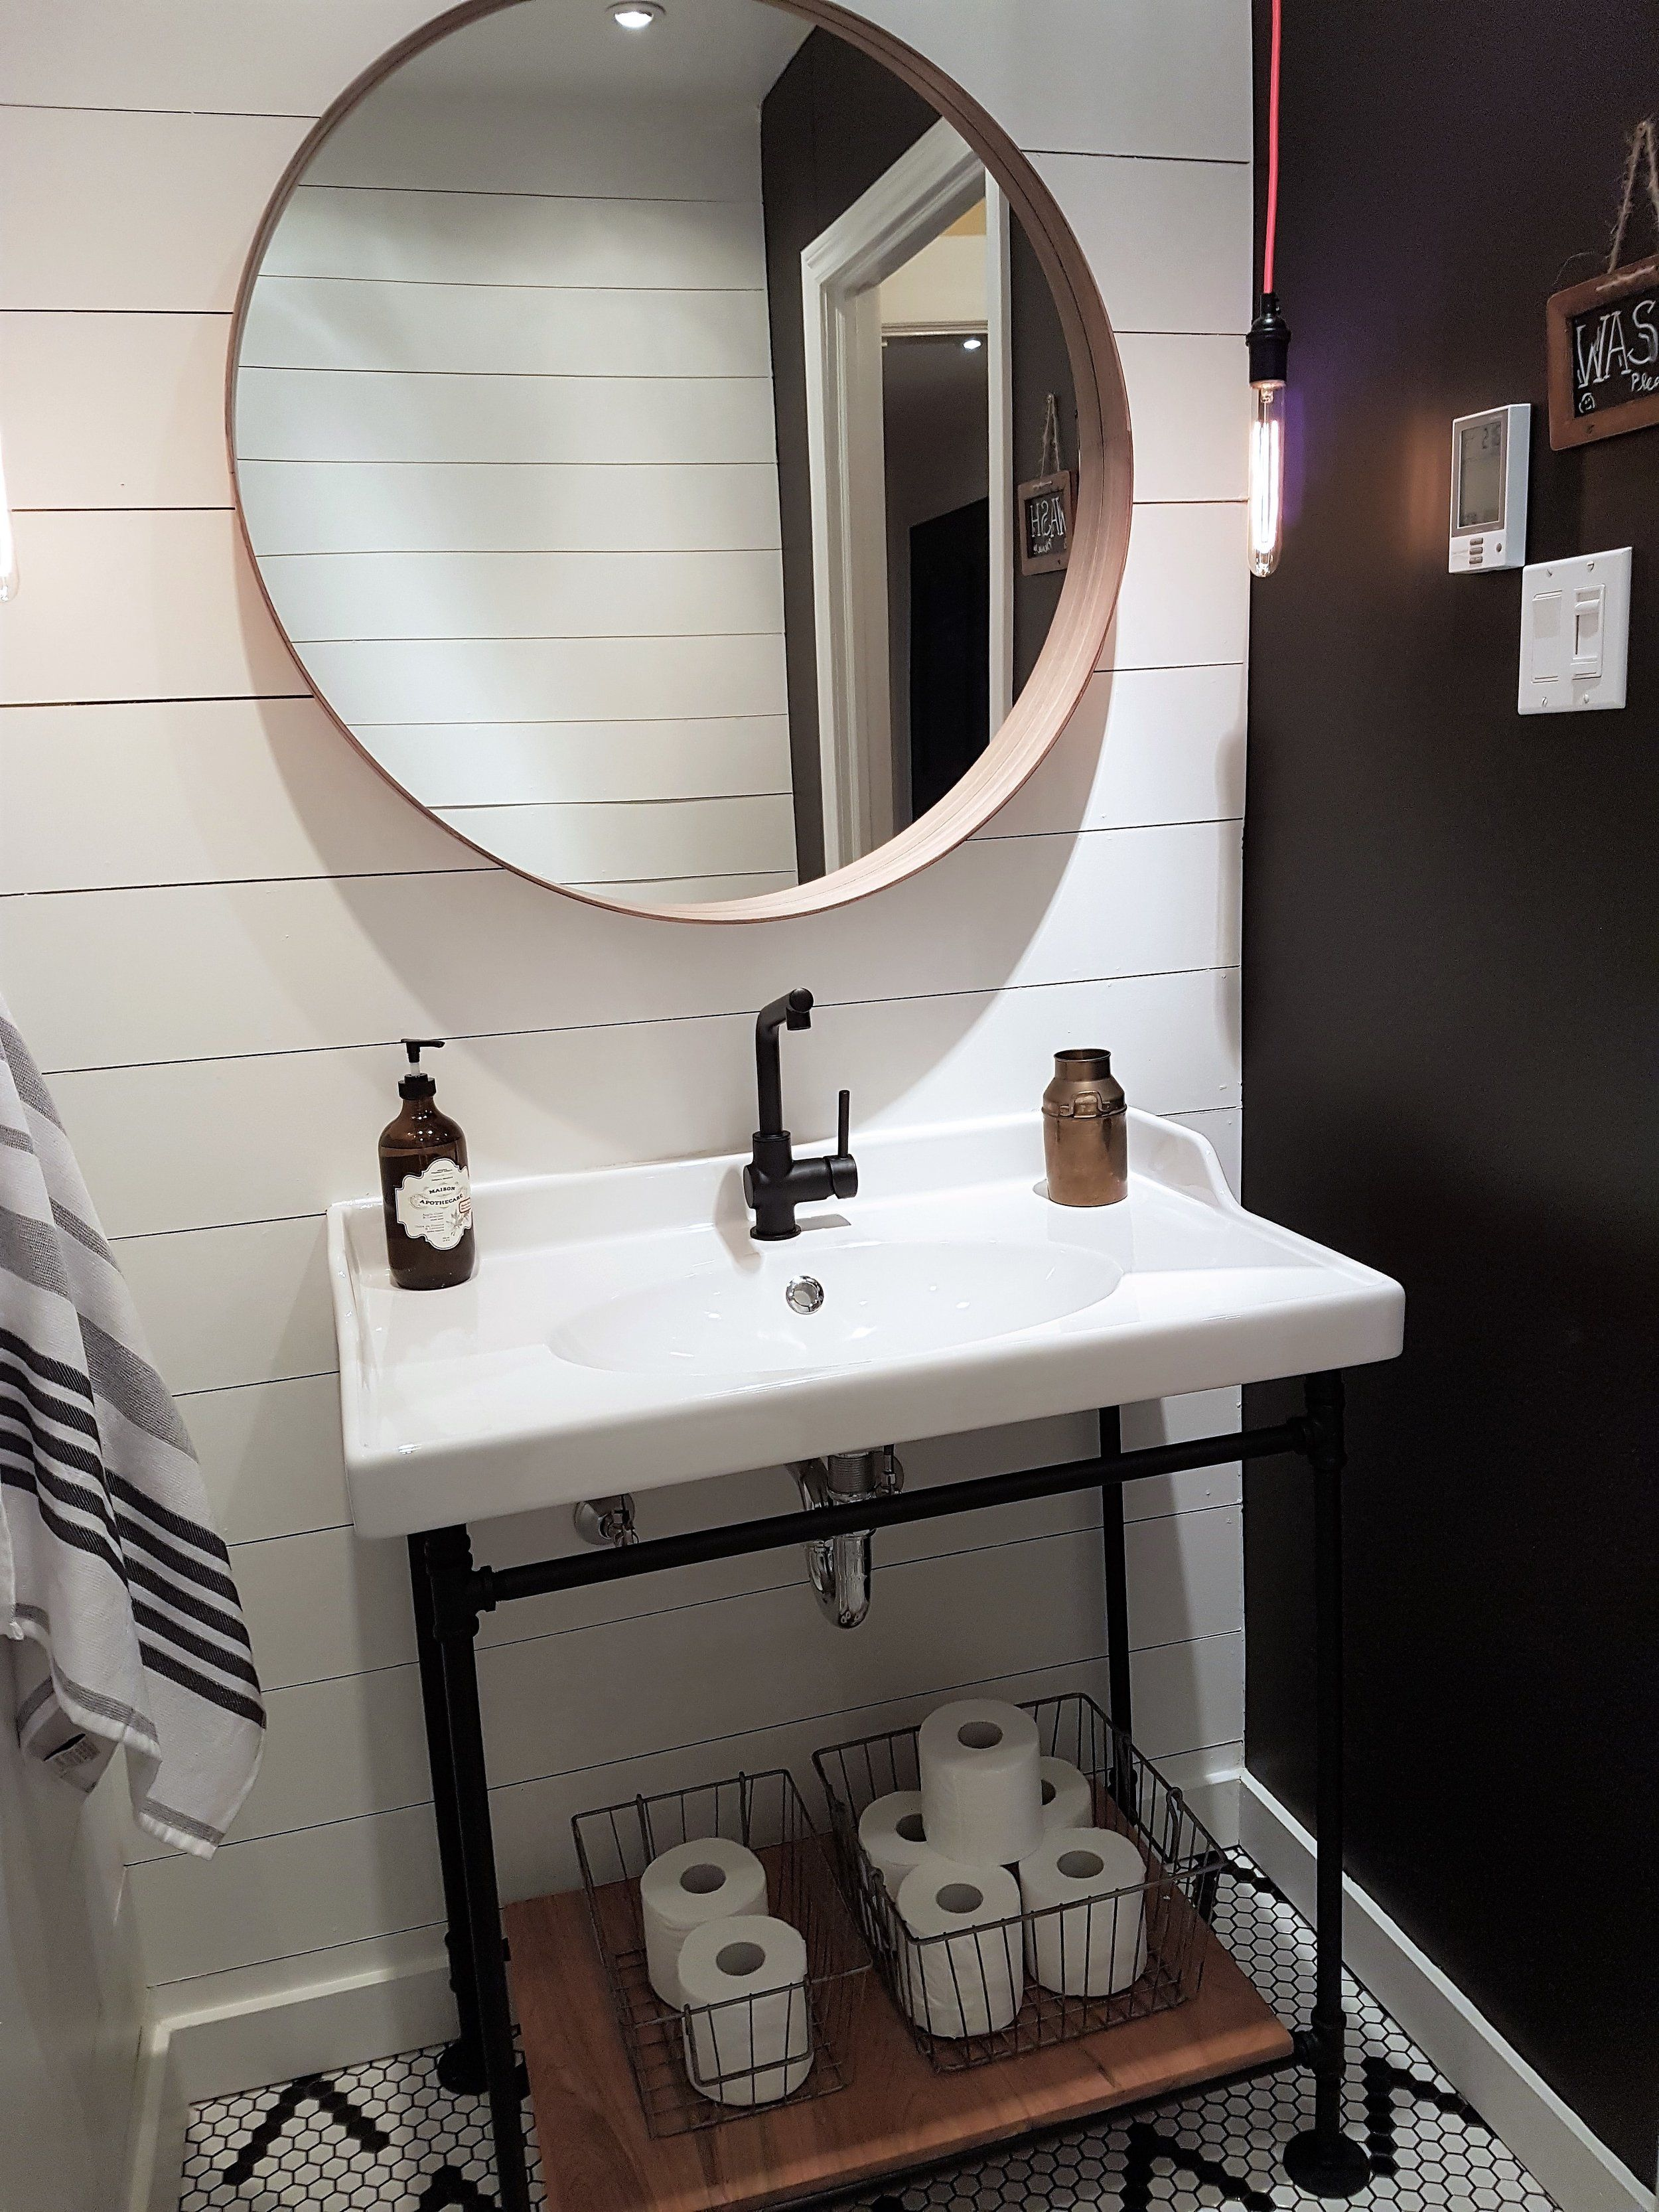 Shiplap Industrial Powder Room By Olive Neon Interior Design Bespoke Vanity Sink Faucet And Mirror From Ikea Powder Room Rooms Reveal Design